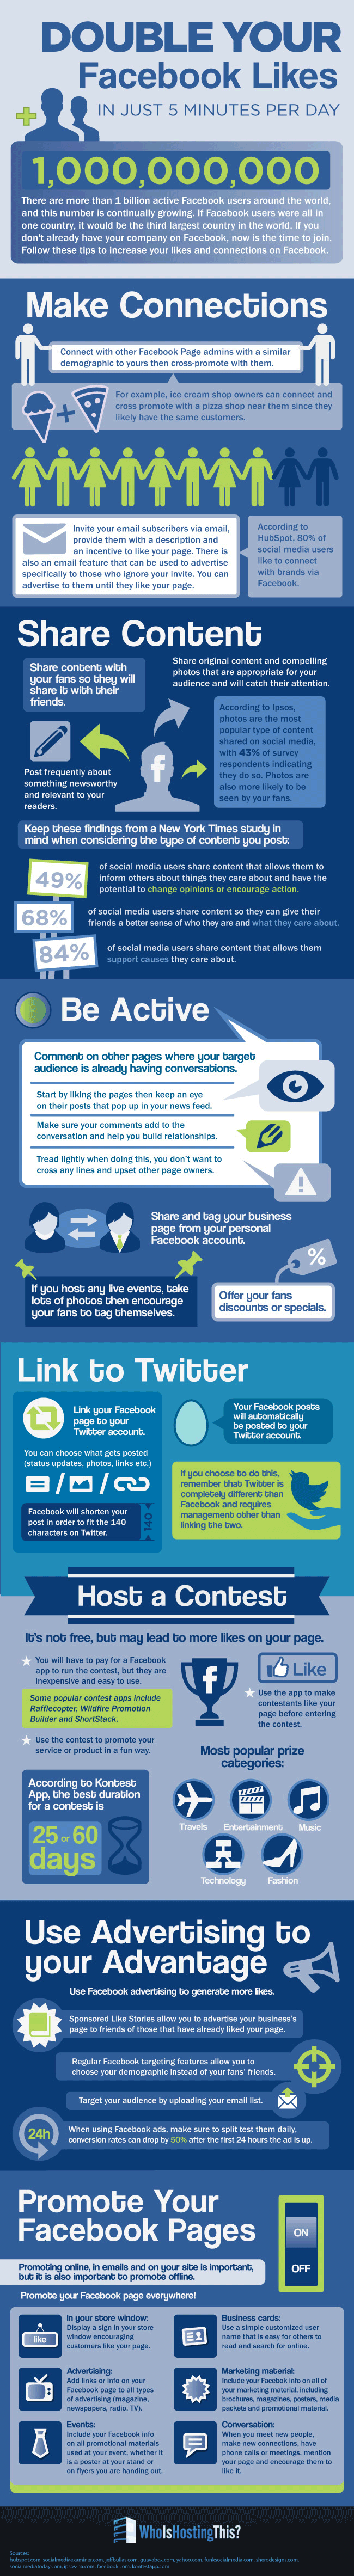 Double Your Facebook Likes in 5 Minutes a Day: Infographic